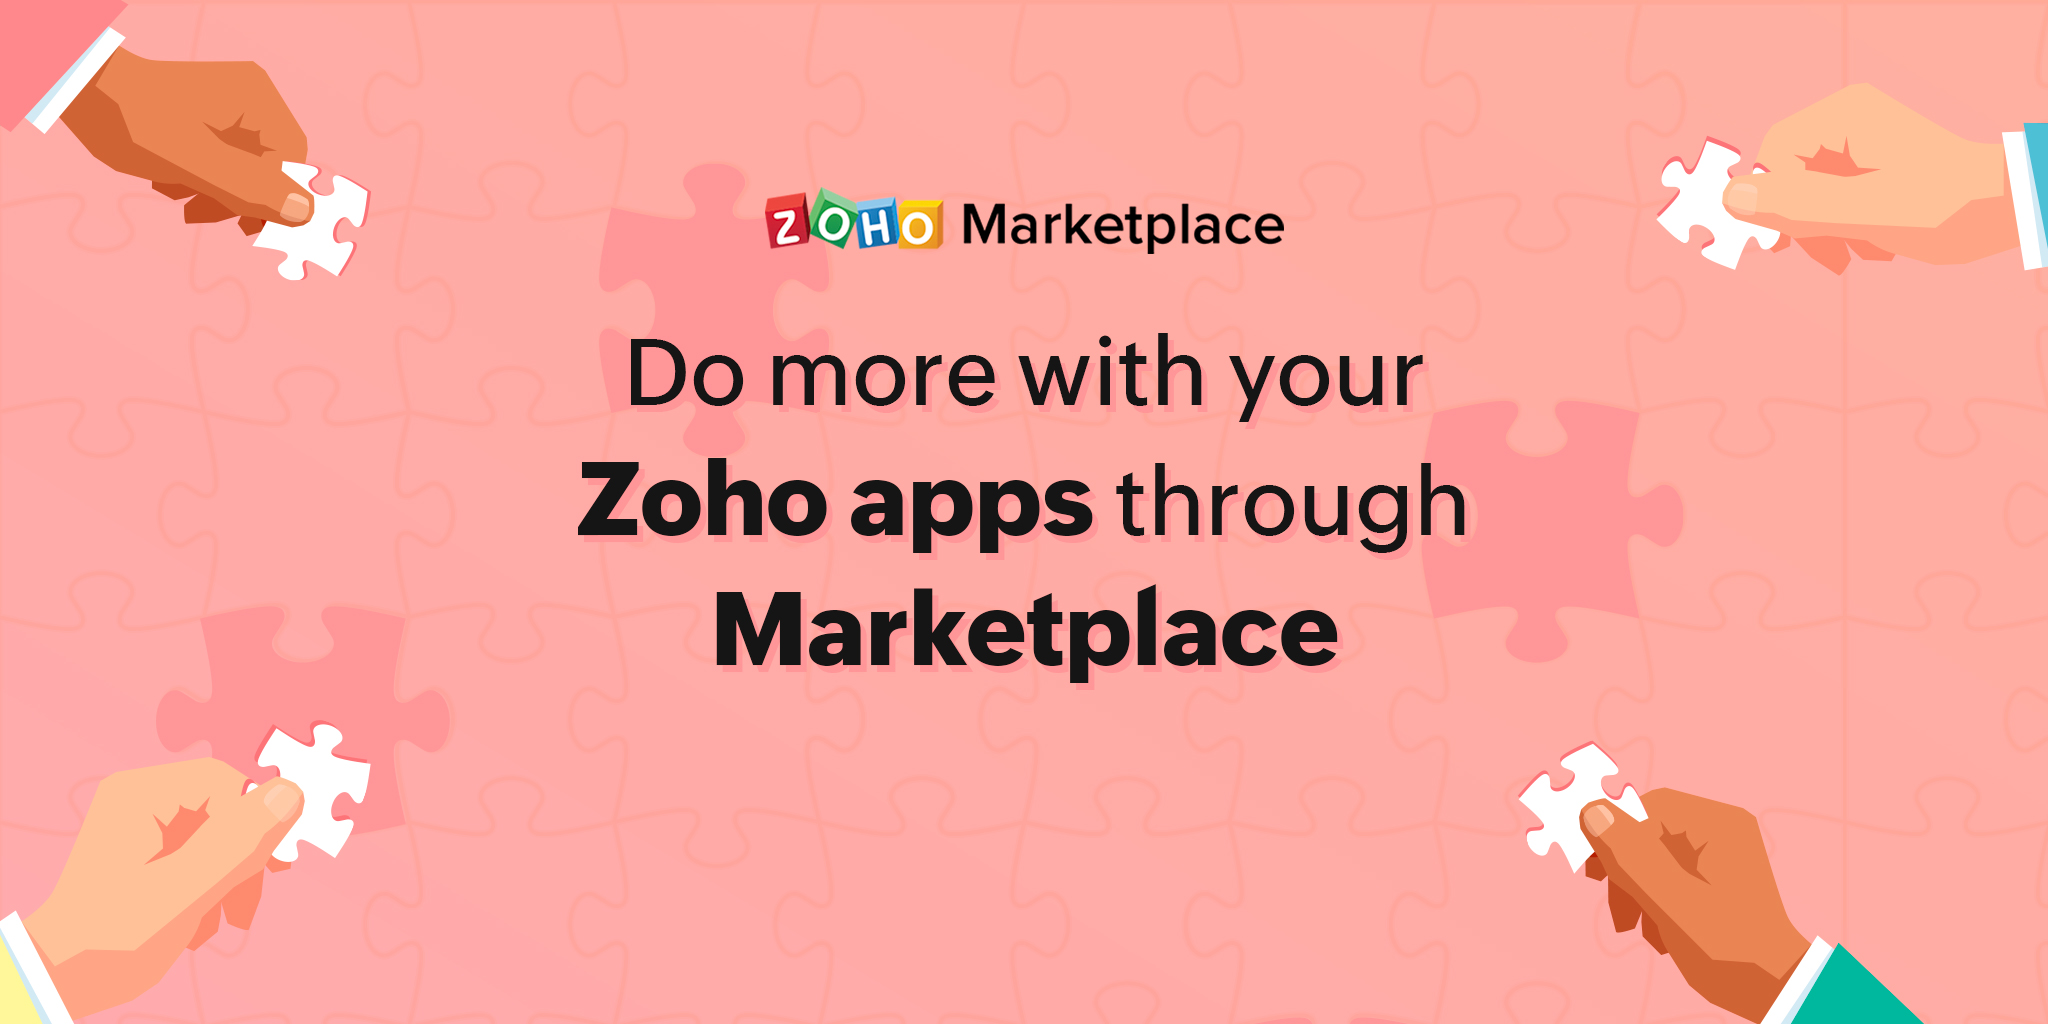 Do more with your Zoho apps through Marketplace